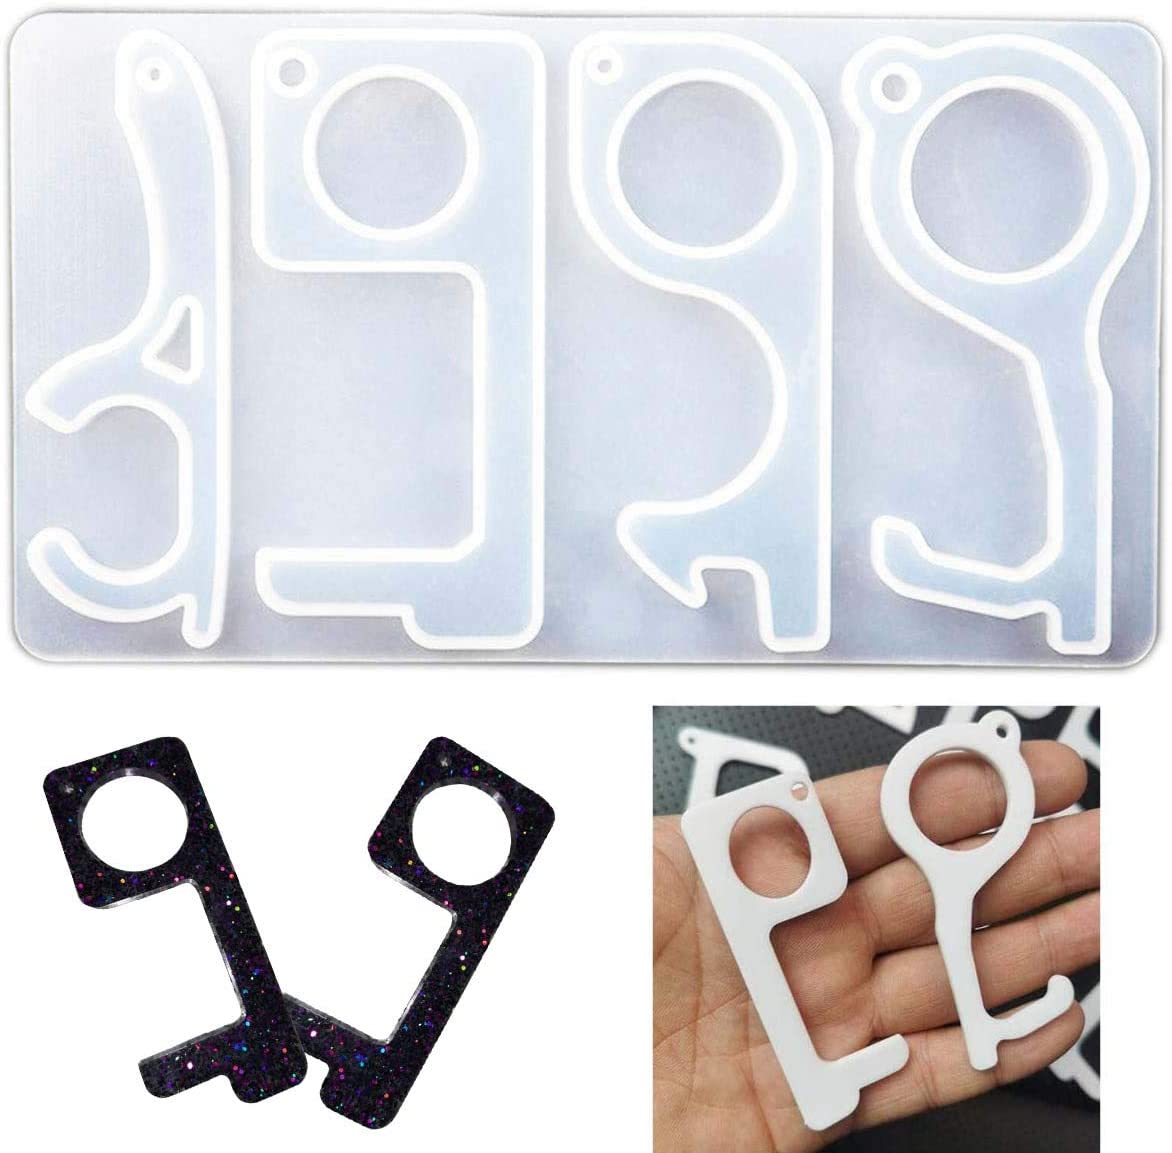 Door Opener Tool Resin Silicone Molds,No Touch Door Handles Hand Free Key Tool Mold Epoxy Resin DIY Touchless Keychain